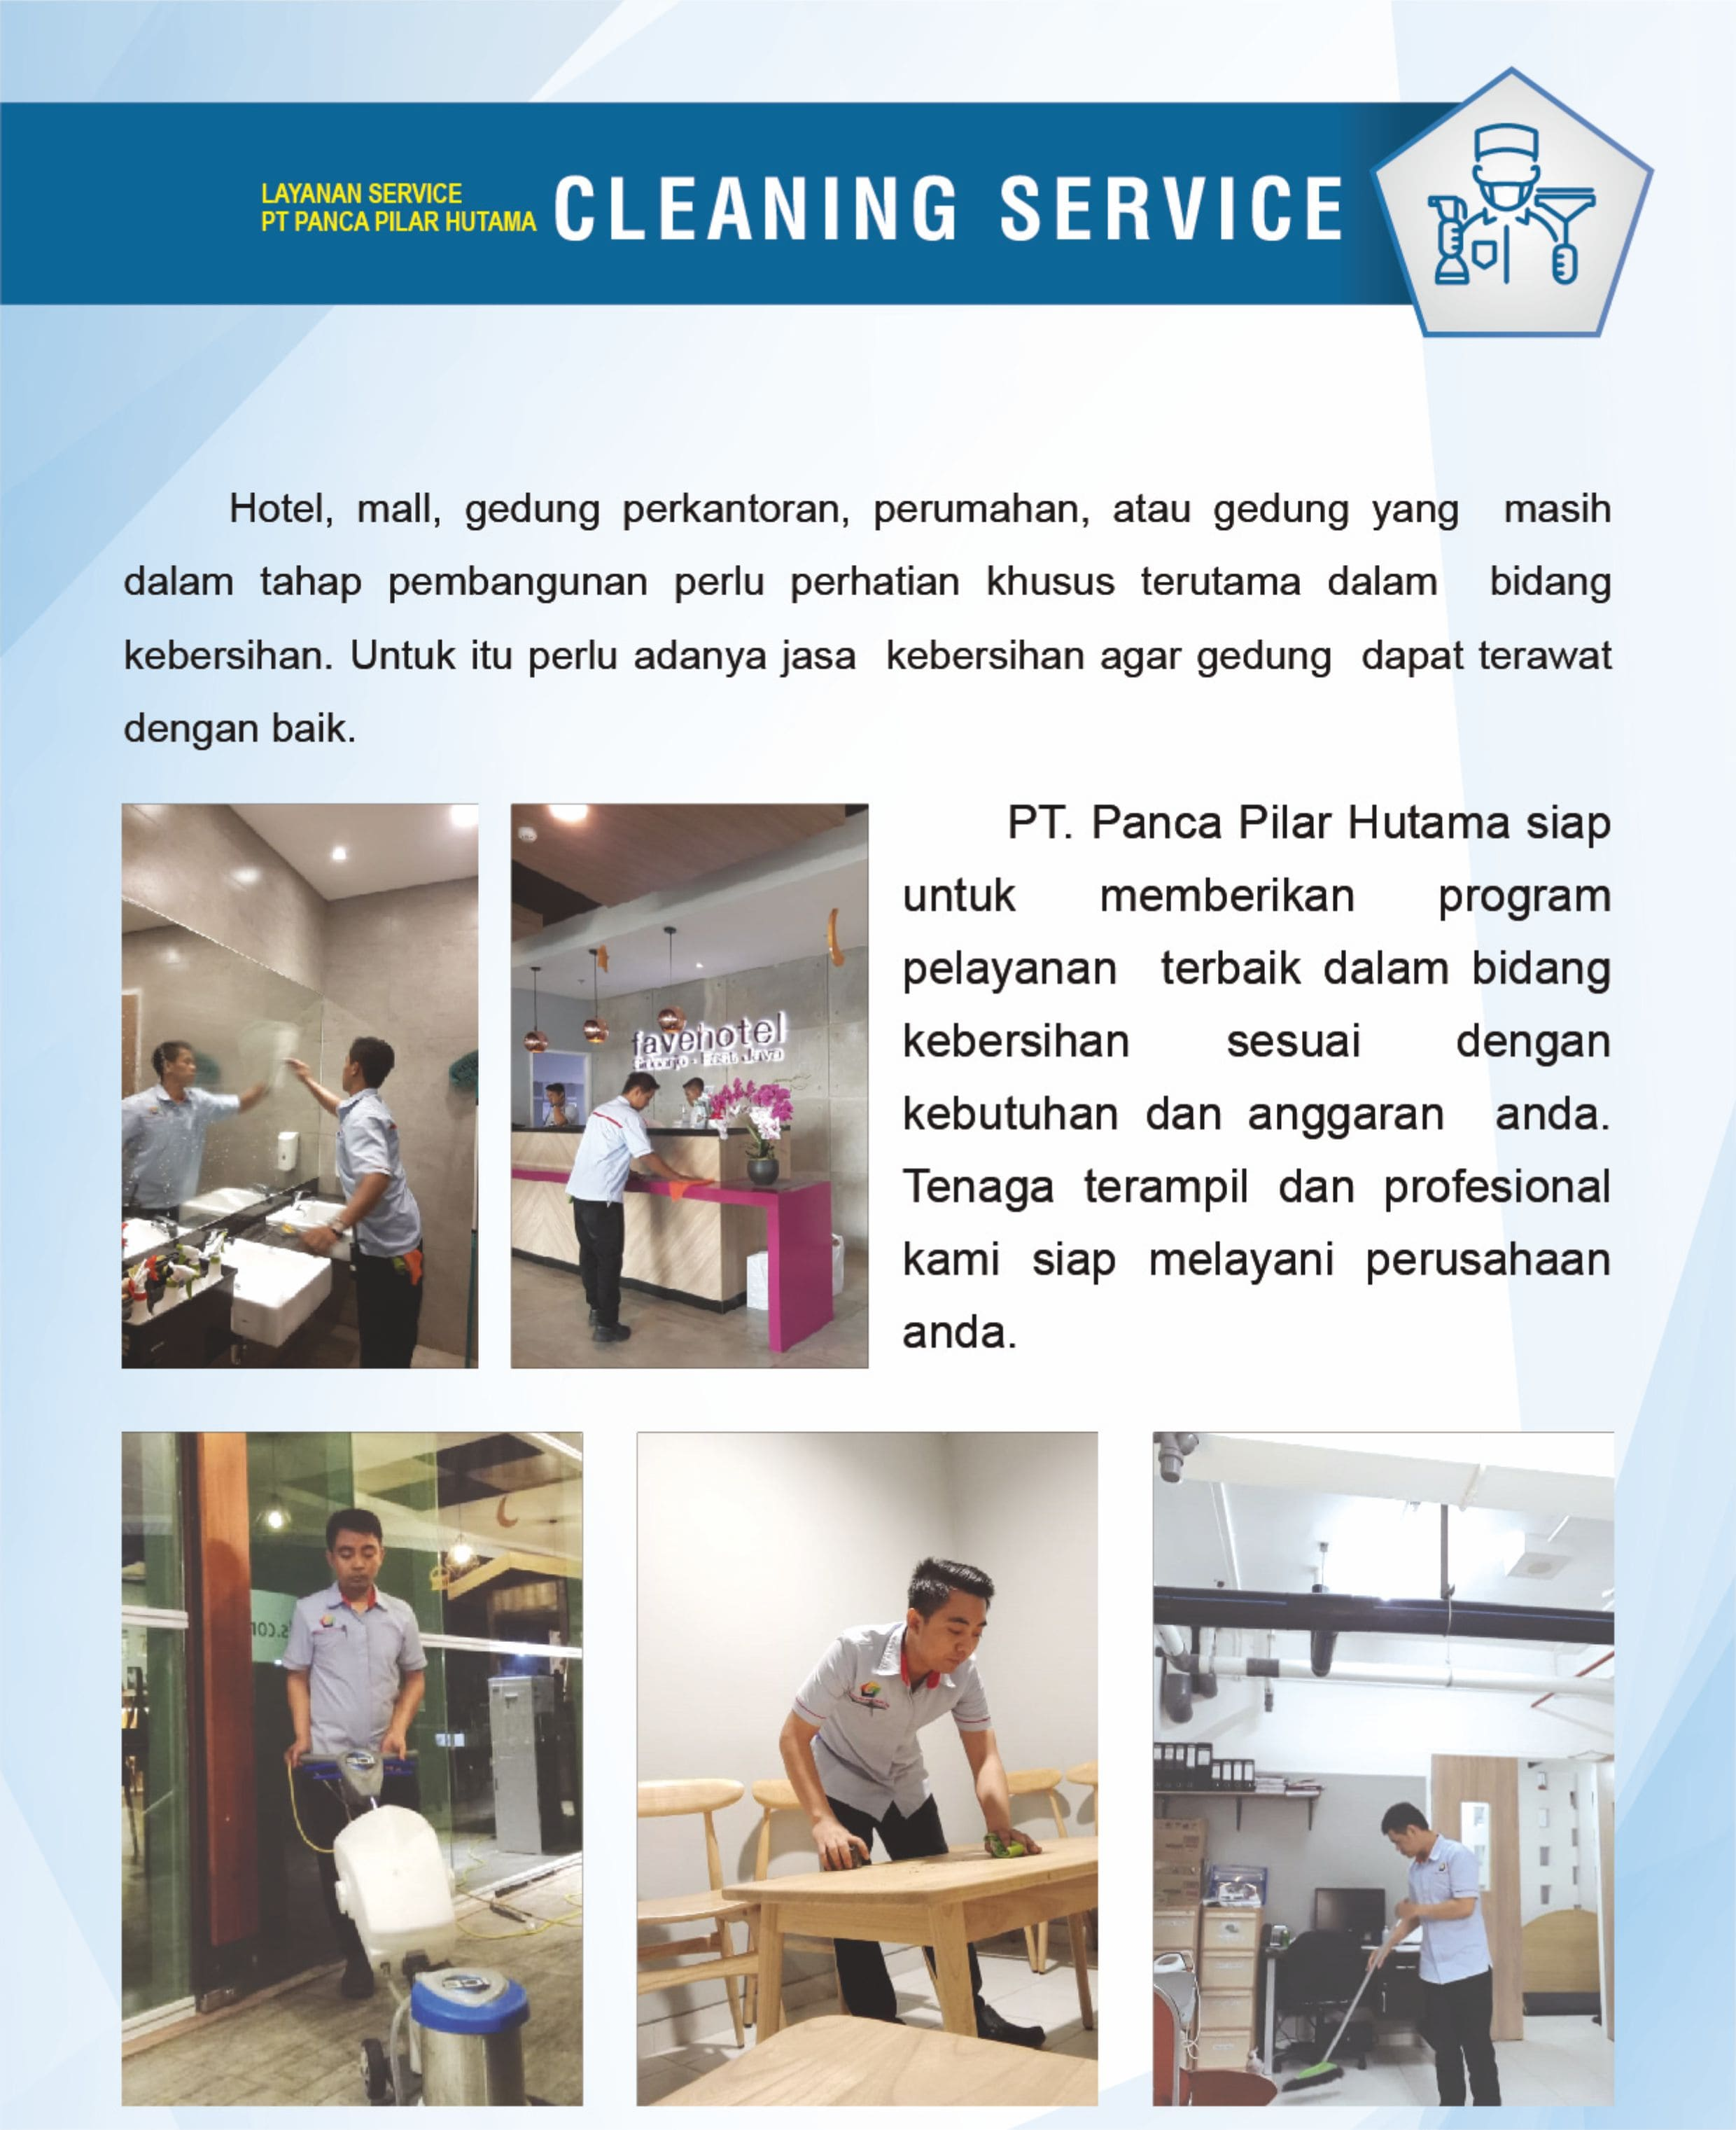 cleaninig service